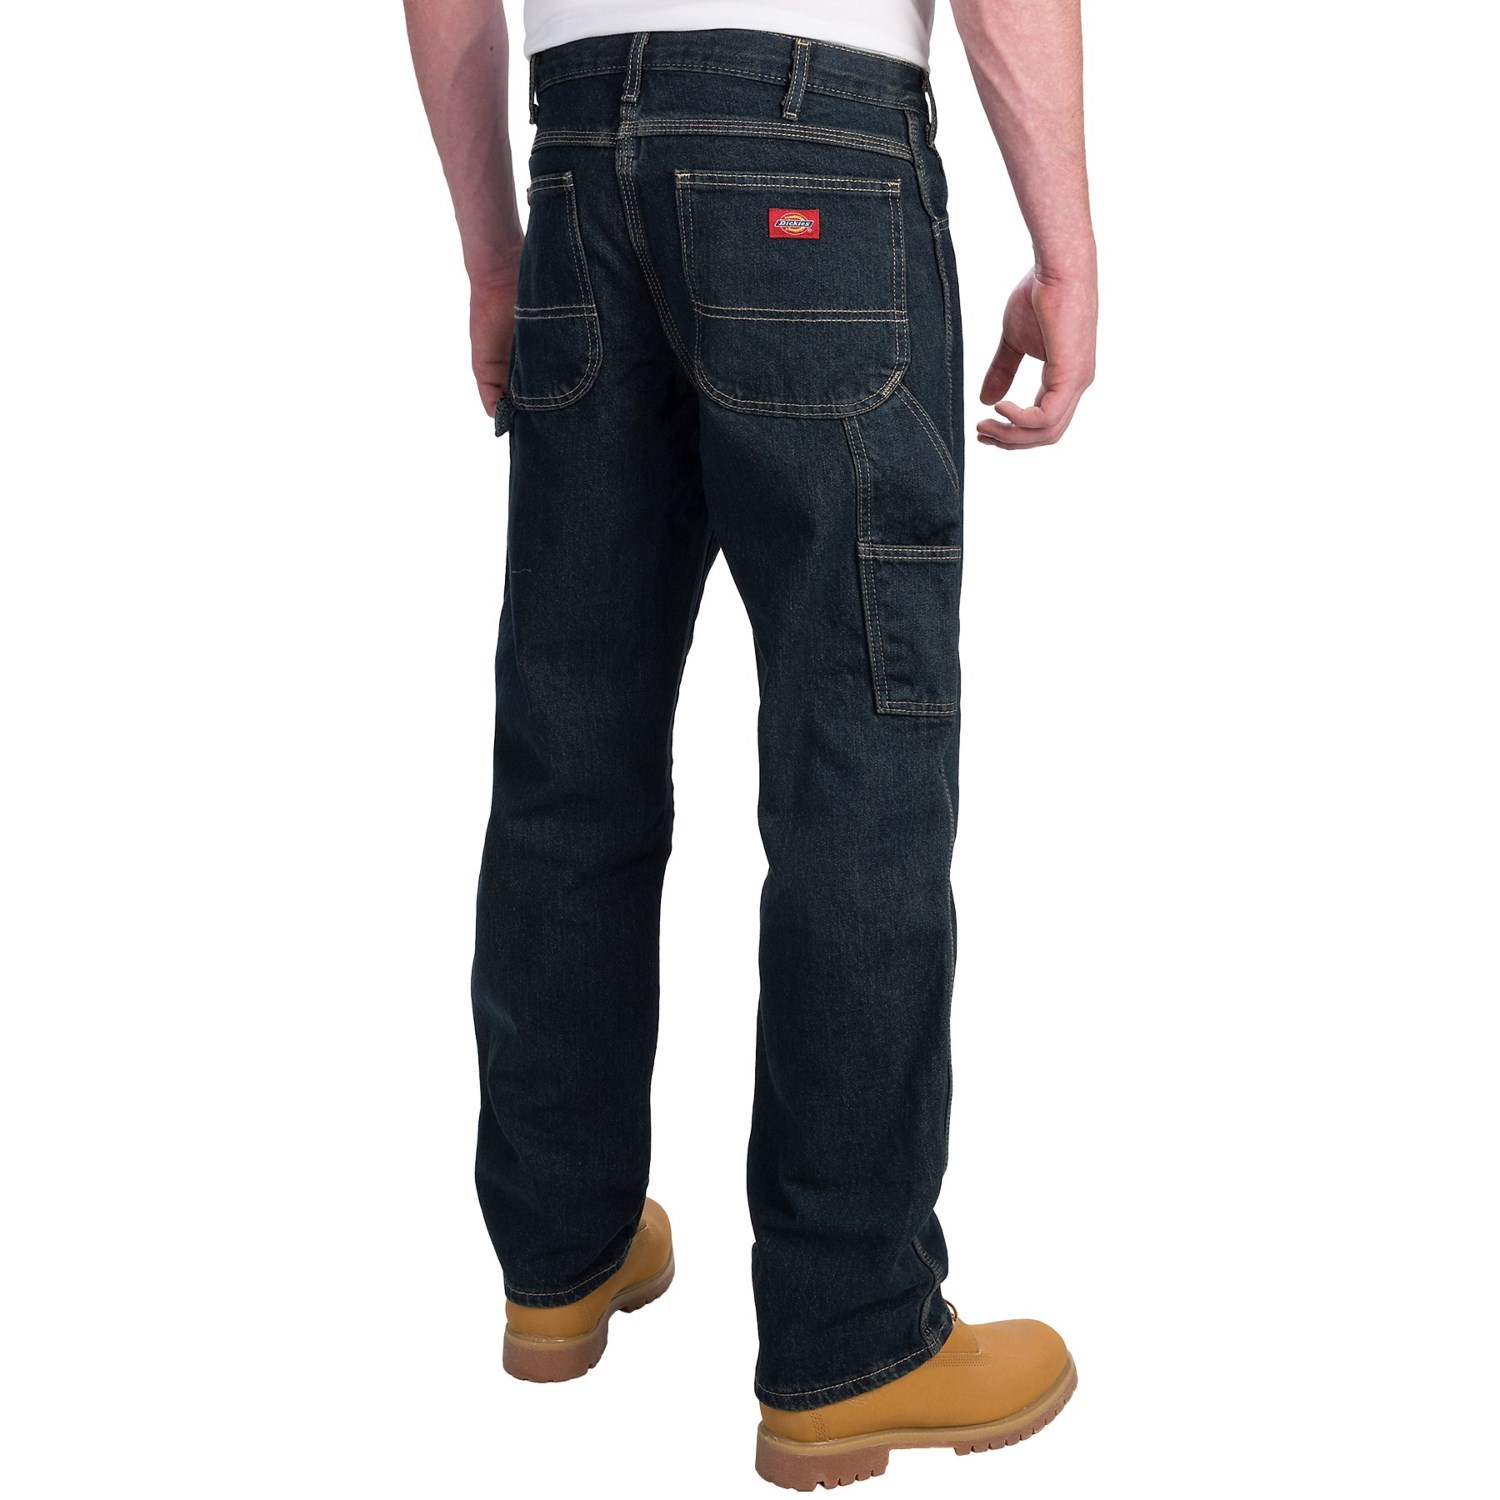 Dickies Carpenter Jeans (For Men) - Save 46%